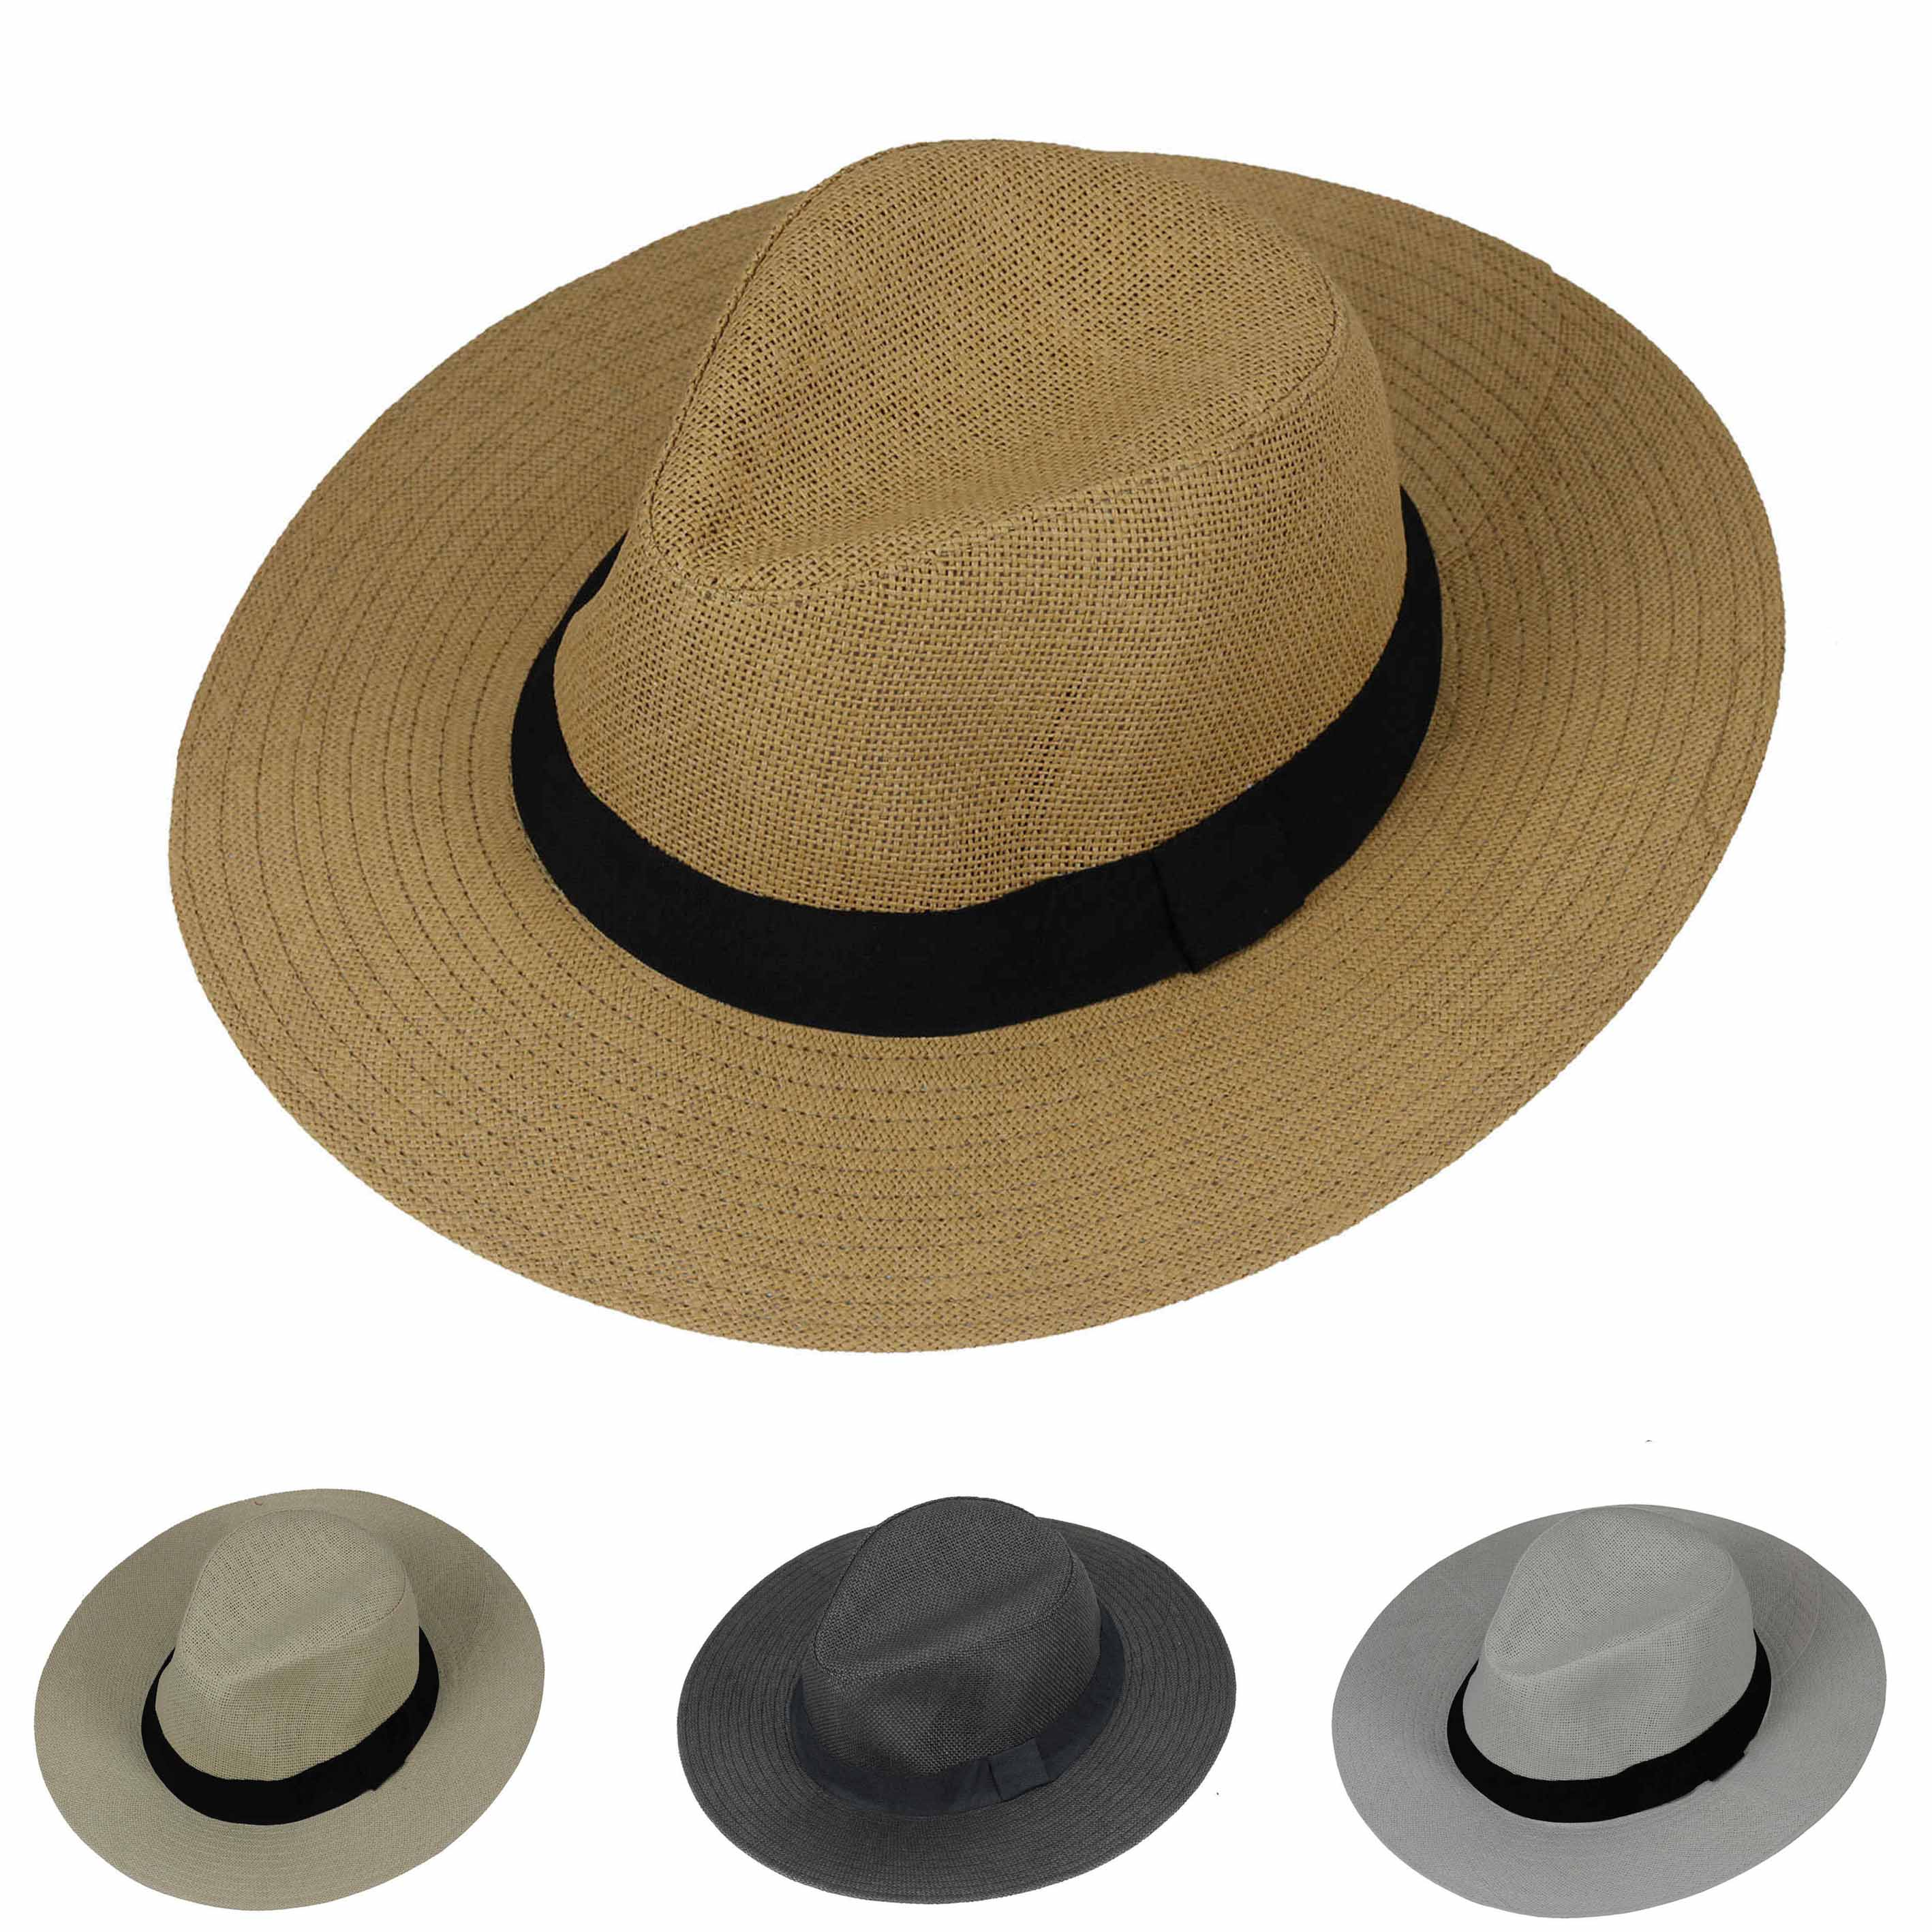 beaf9e31551 New Mens Ladies Womens Straw Panama Hat Wide Brim Fedora Trilby Style  Summer Cap